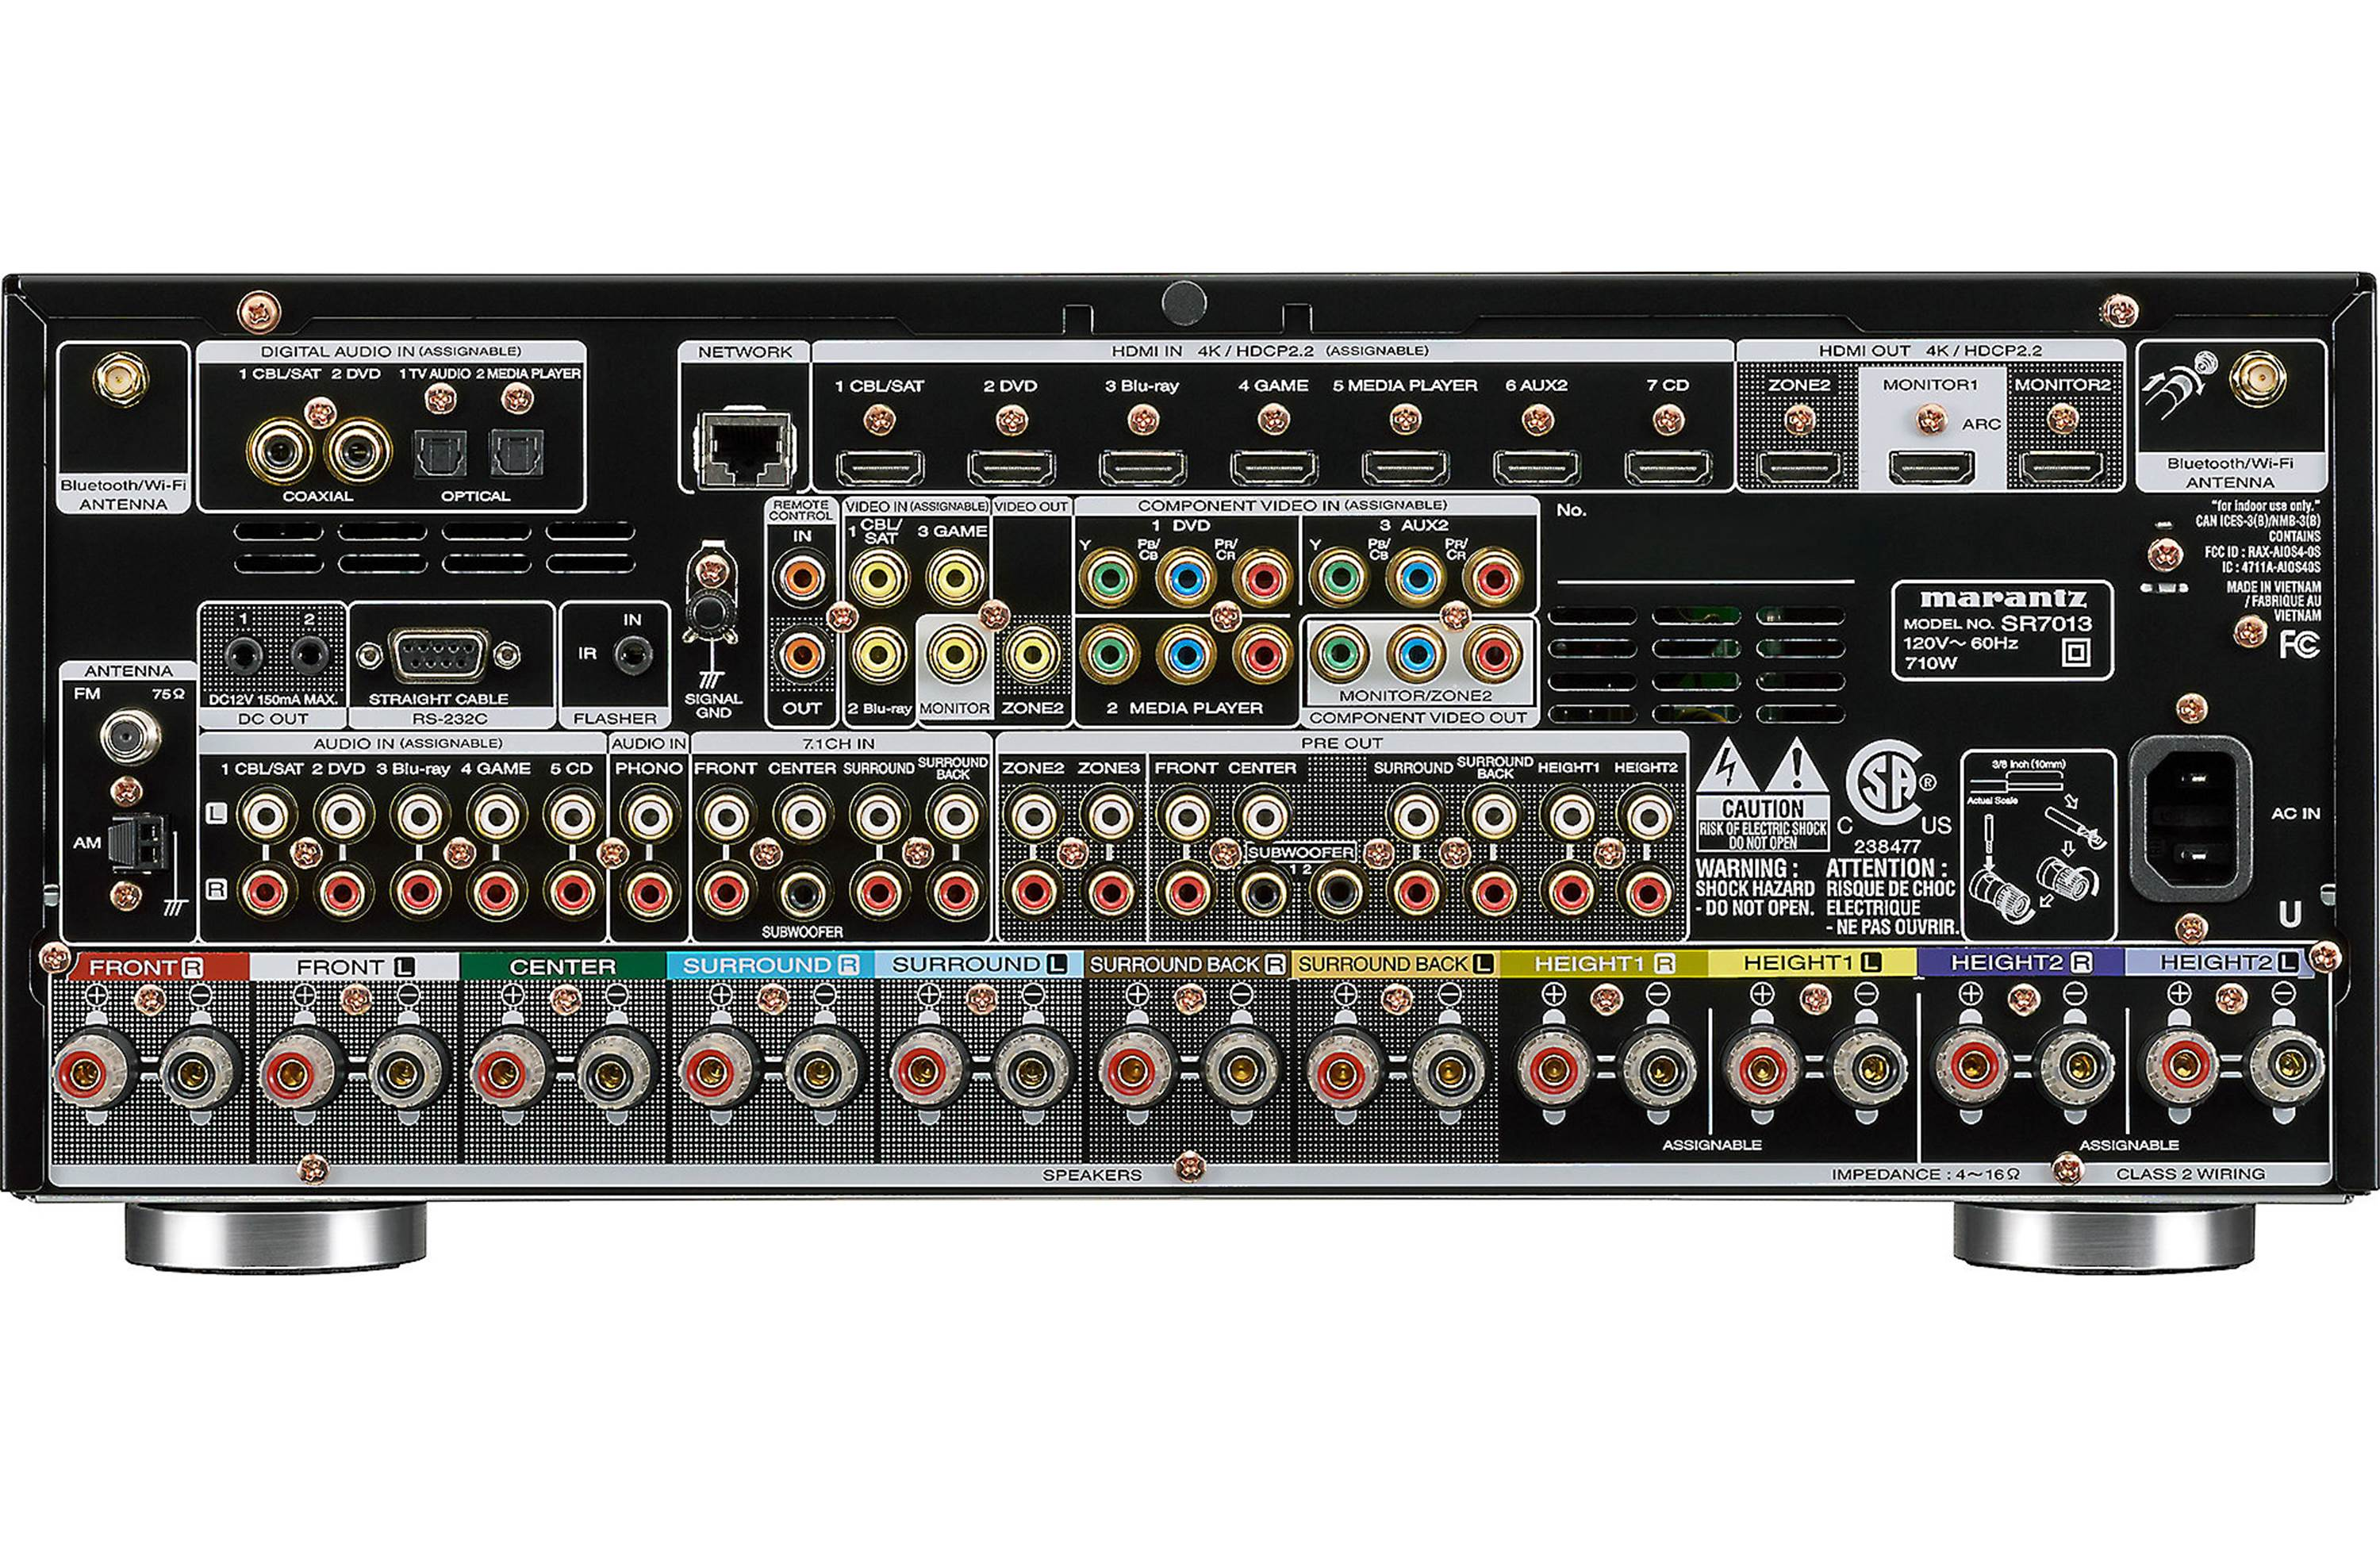 Marantz SR7013 Review - Features and Specs | ZKelectronics